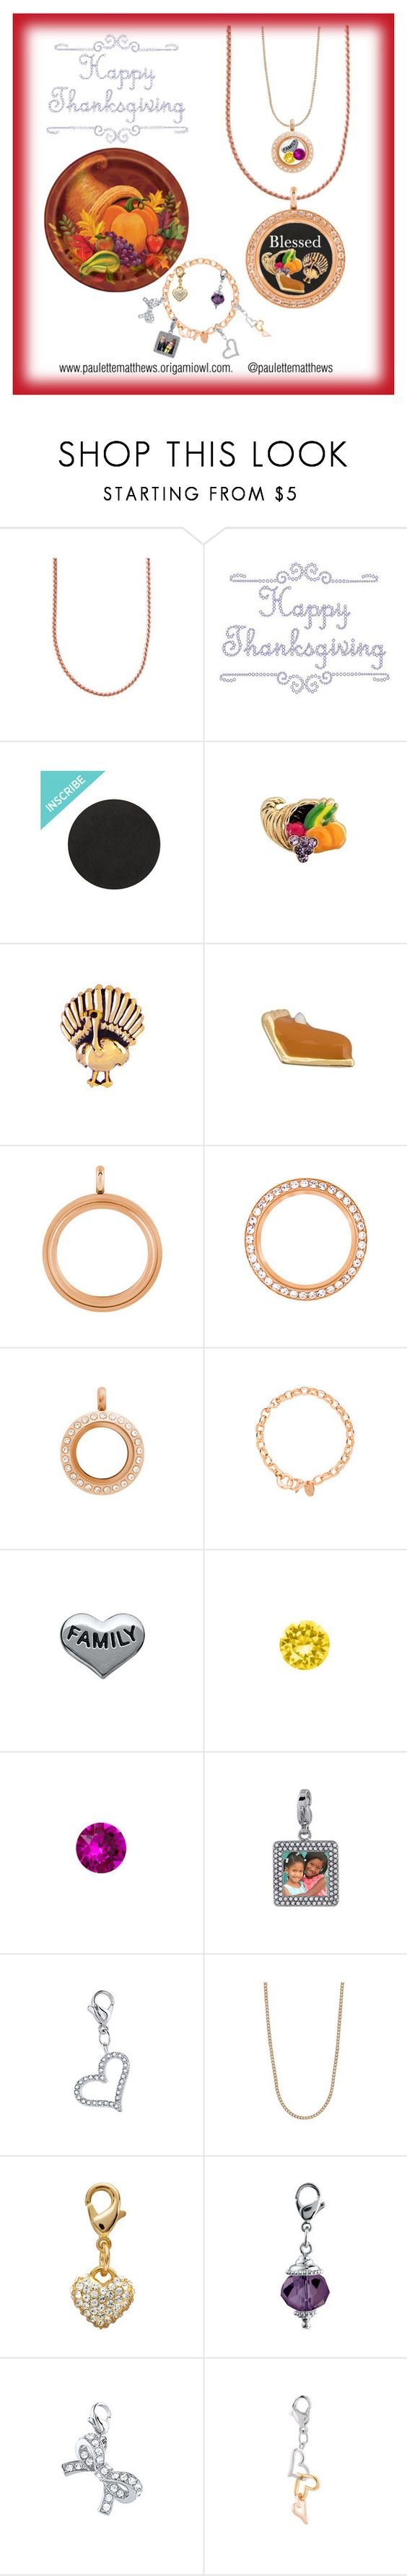 """""""Happy Thanksgiving"""" by paulette-matthews on Polyvore"""